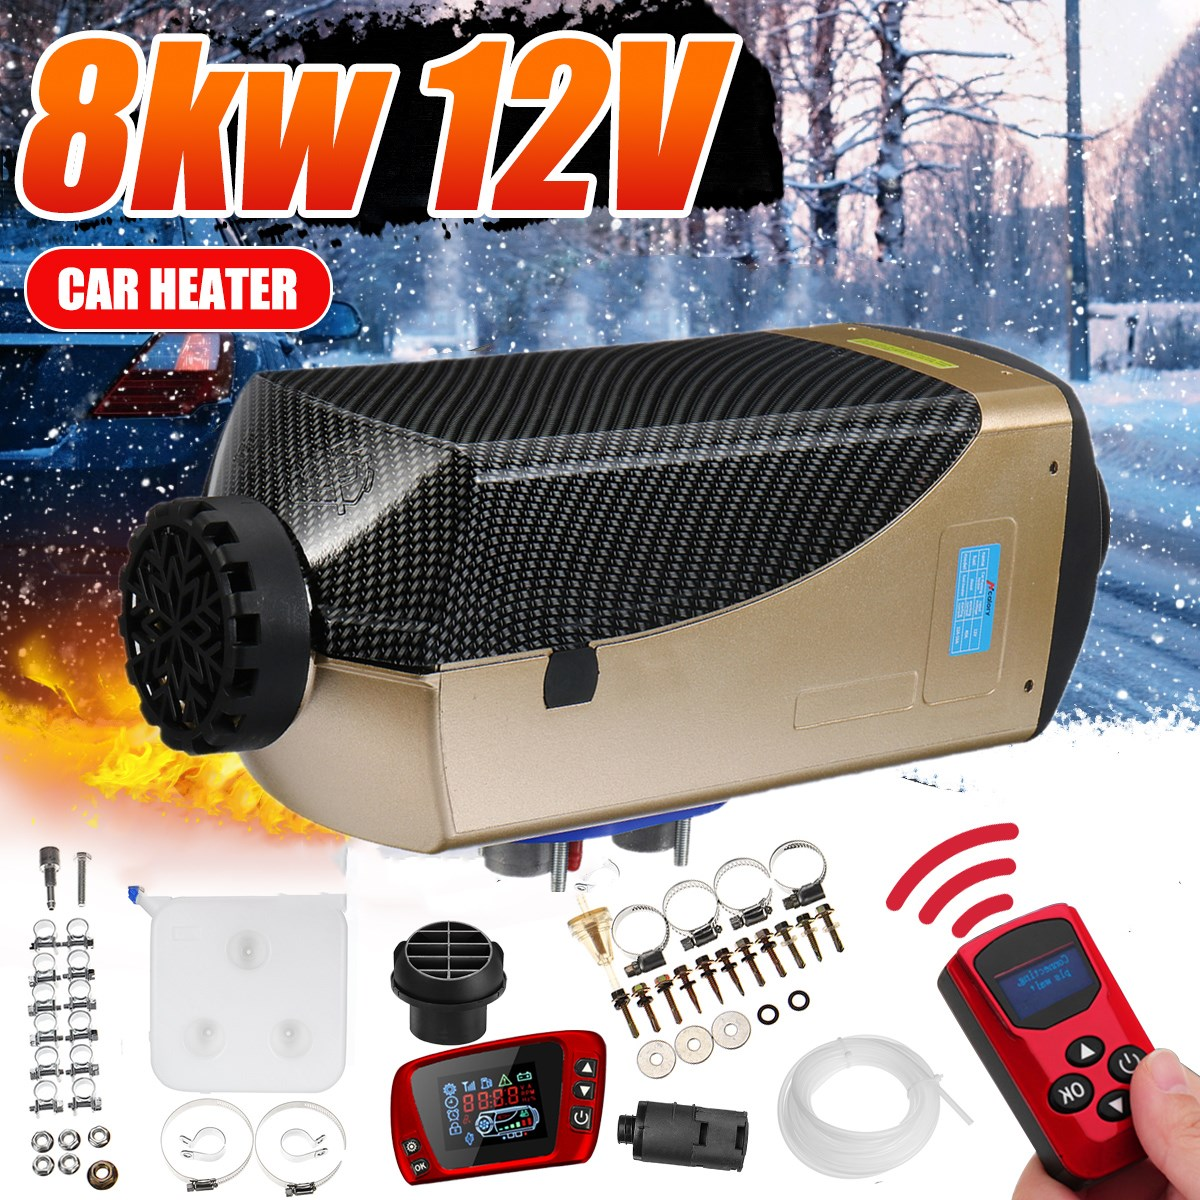 Trucks Engineering vehicles 8KW Diesel Air Heater 12V Diesel Parking Car Heater Automatic Control 10L Tank LCD Switch Silencer for Cars Buses